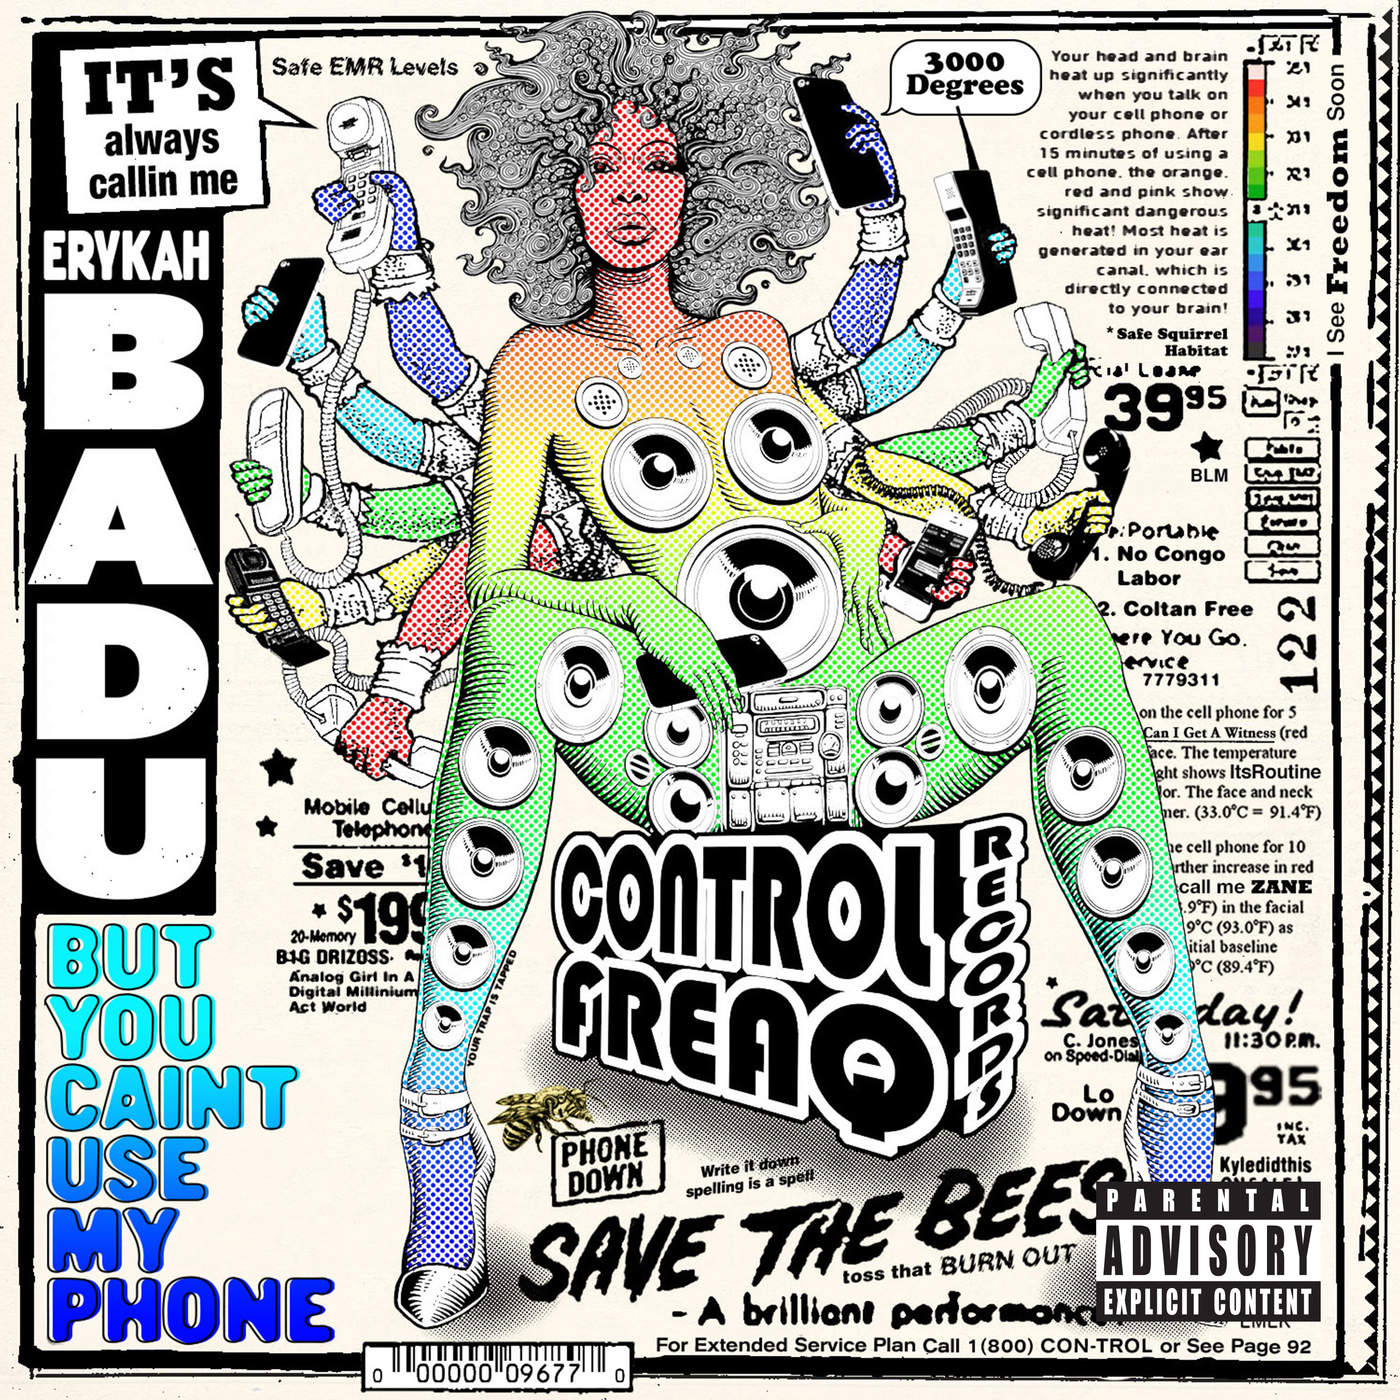 Can use my phone badu dating. 16 and 20 year old dating.